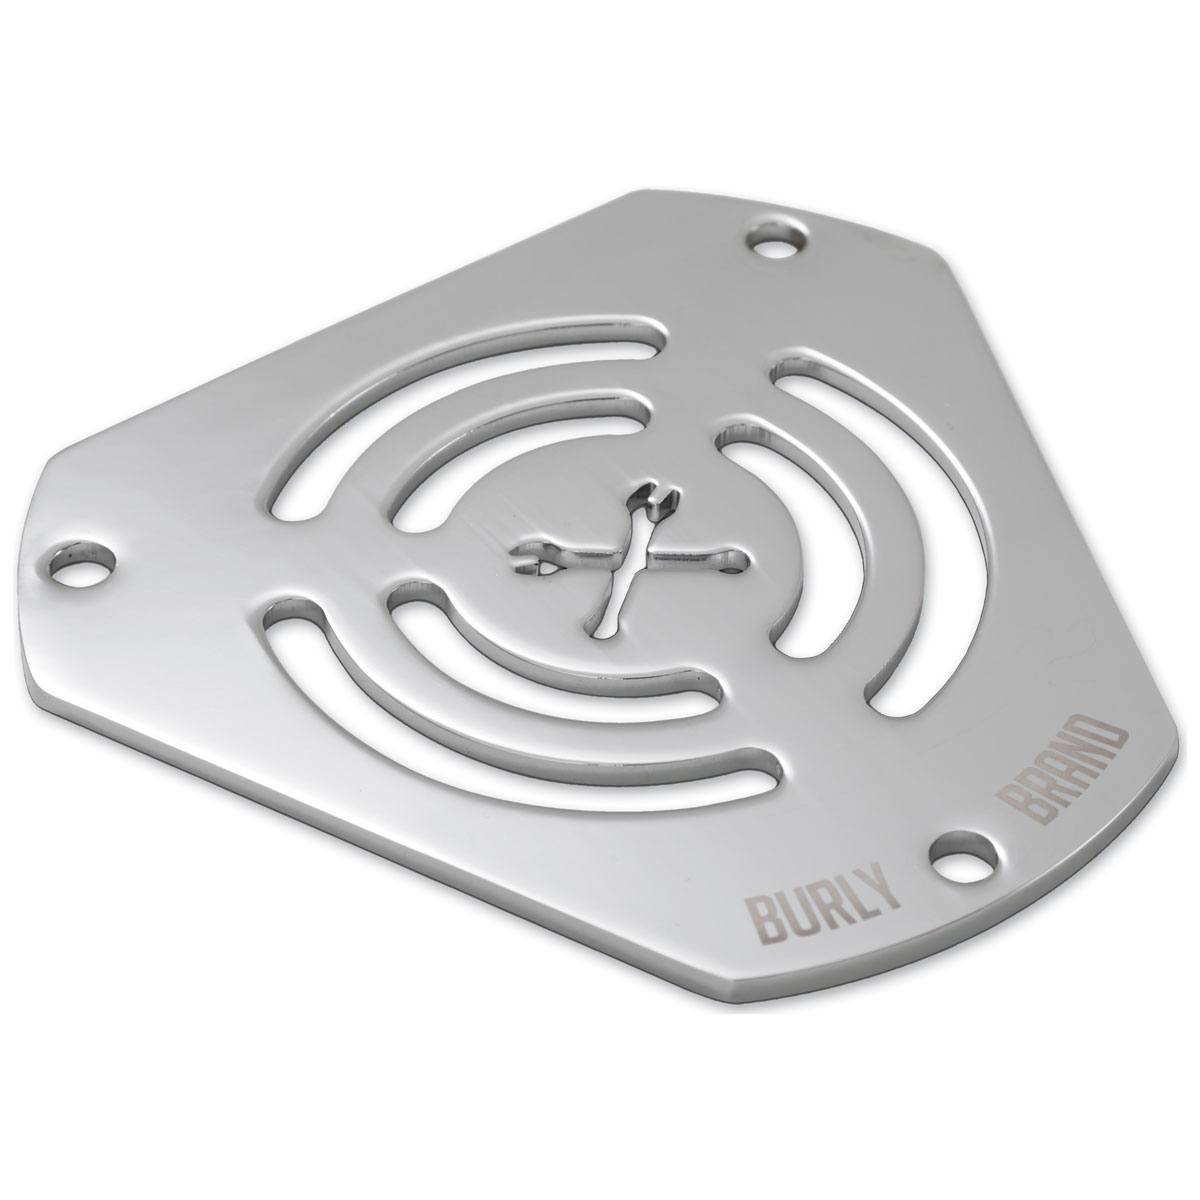 Burly Brand Chrome Wrenches Hex Air Cleaner Face Plate